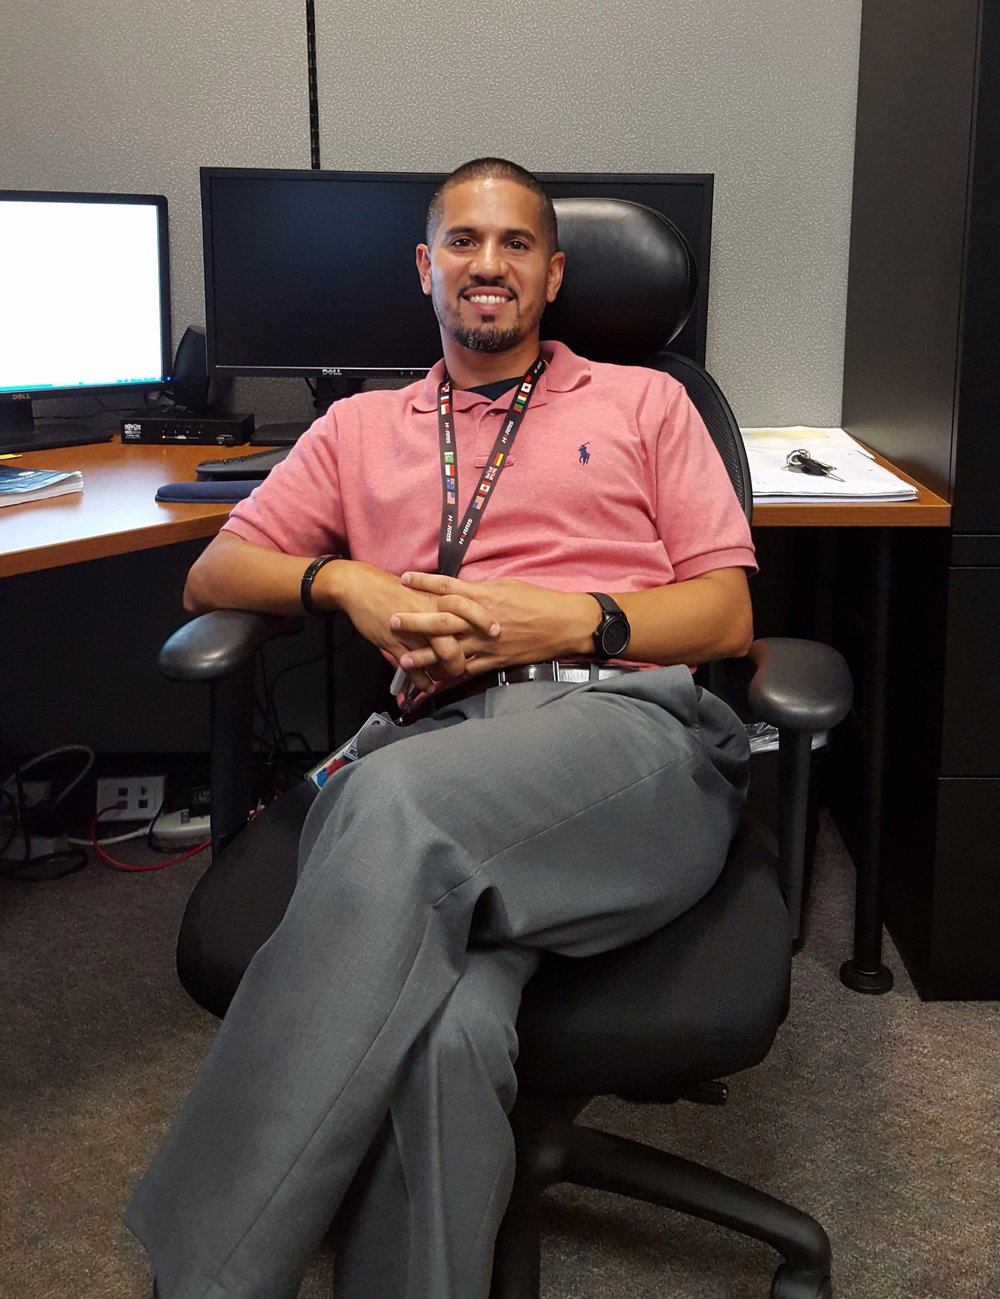 Wilfredo Oliveras - IT Administrator at Five Rivers ServicesUnited States Army